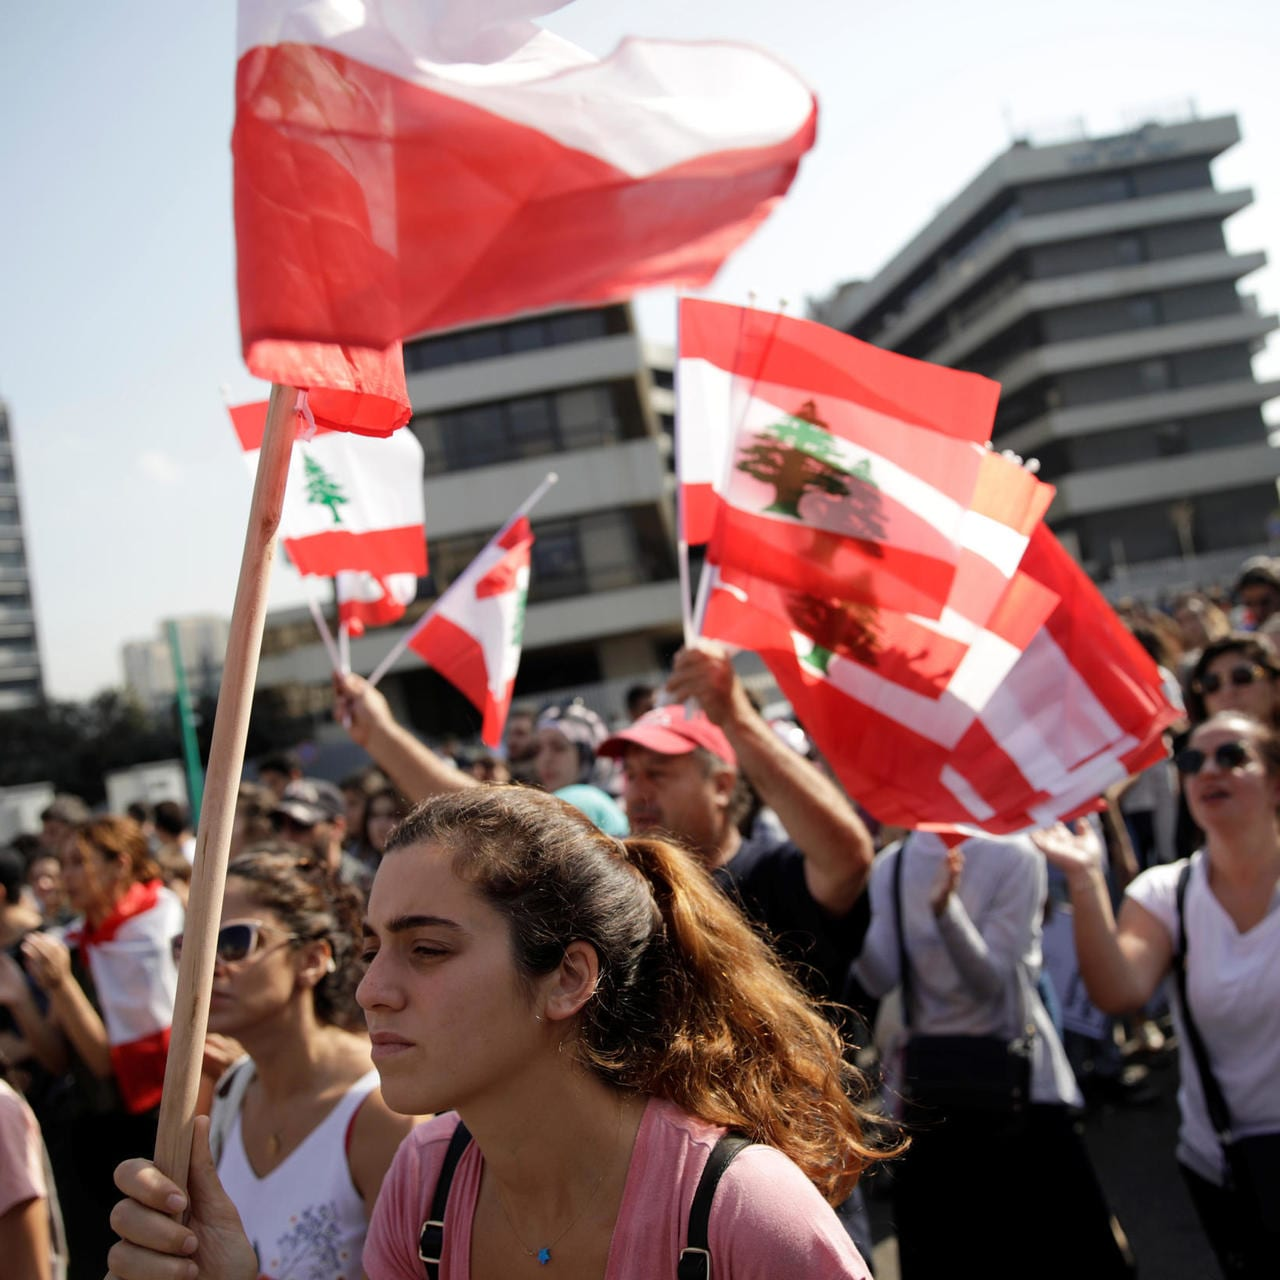 Lebanese students in a protest